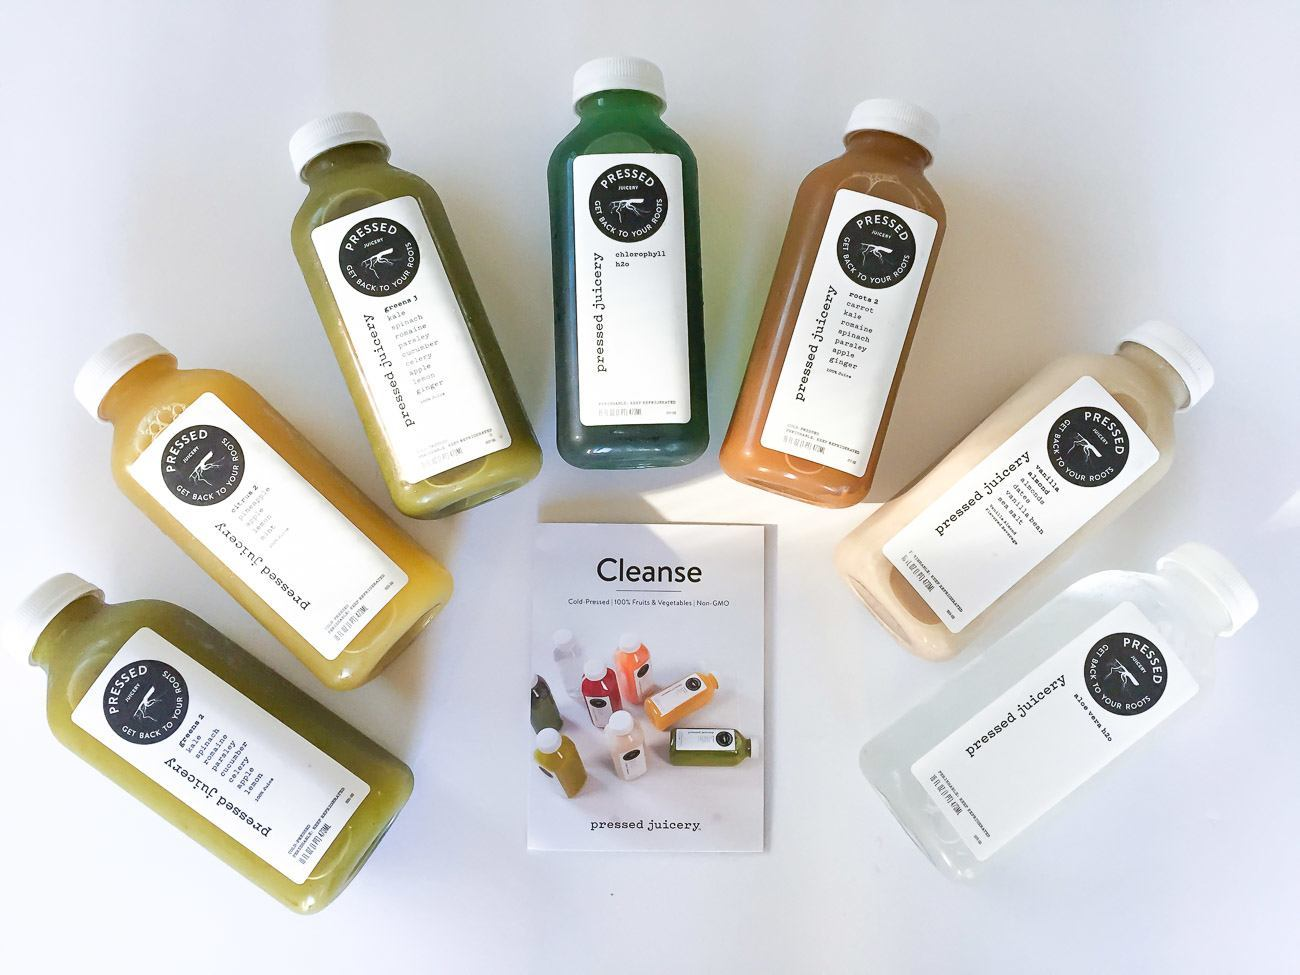 What To Expect On A Pressed Juicery 3 Day Cleanse La